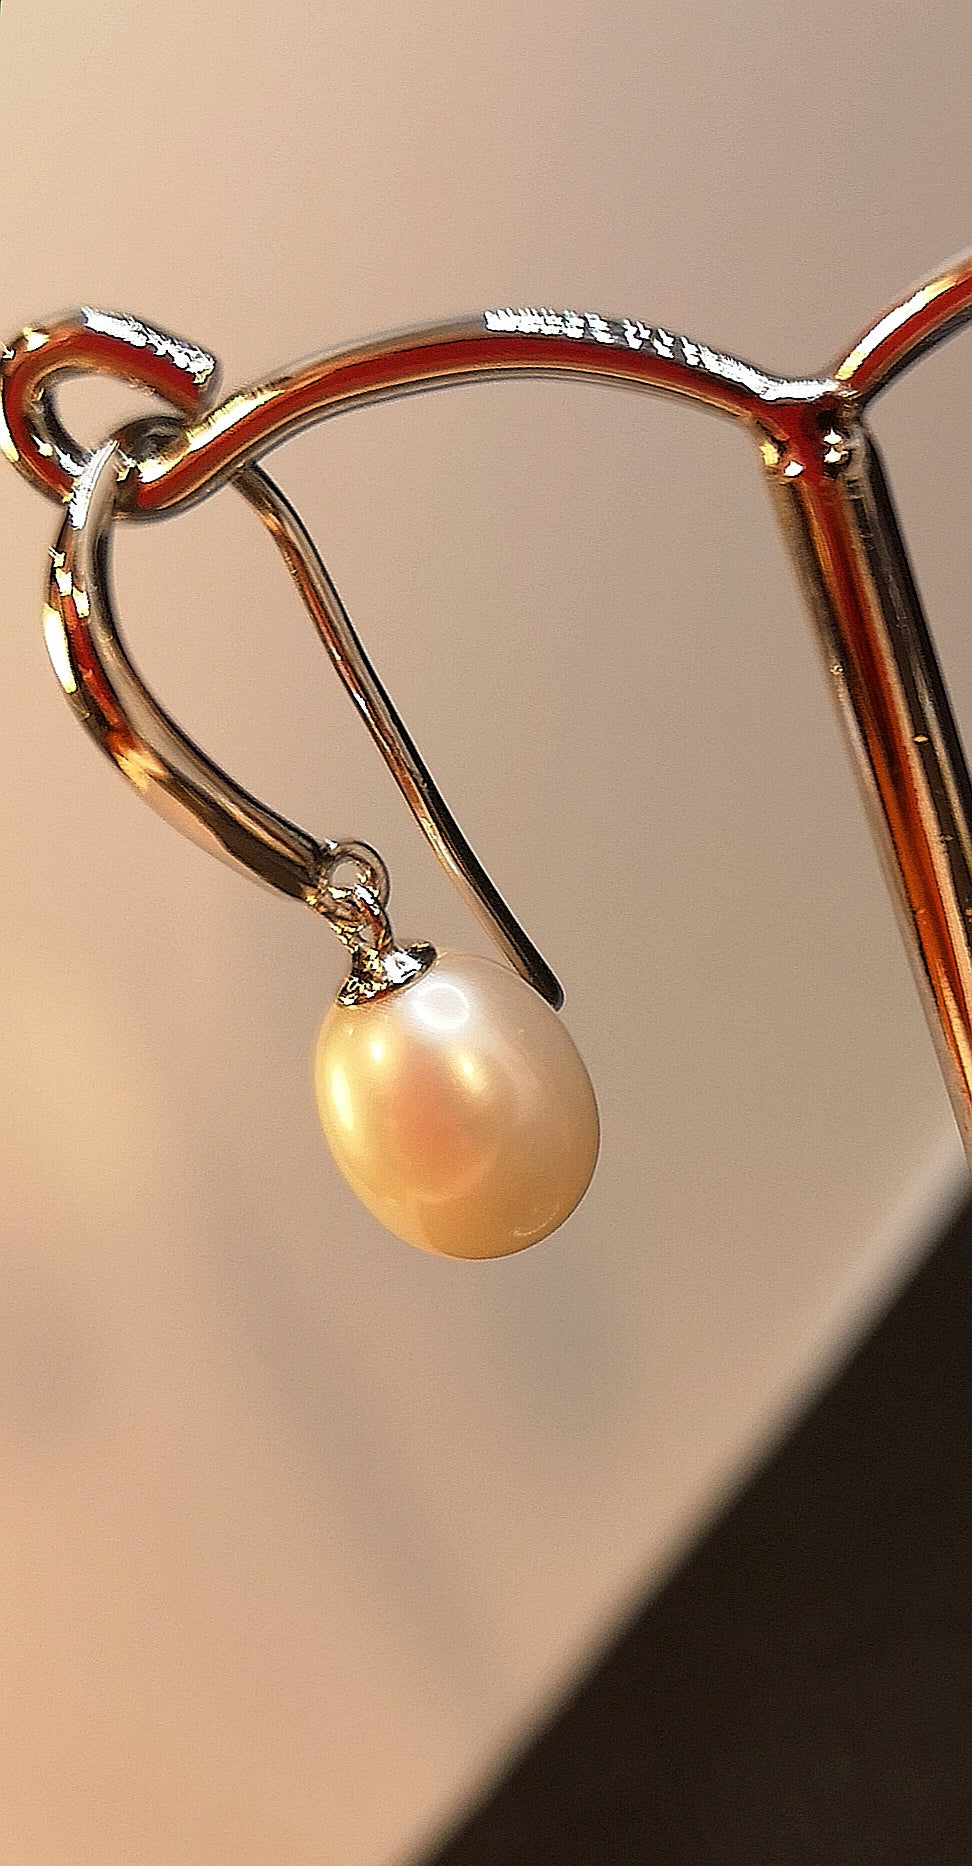 Genuine hanging pearl earring in sterling silver with rhodium finish